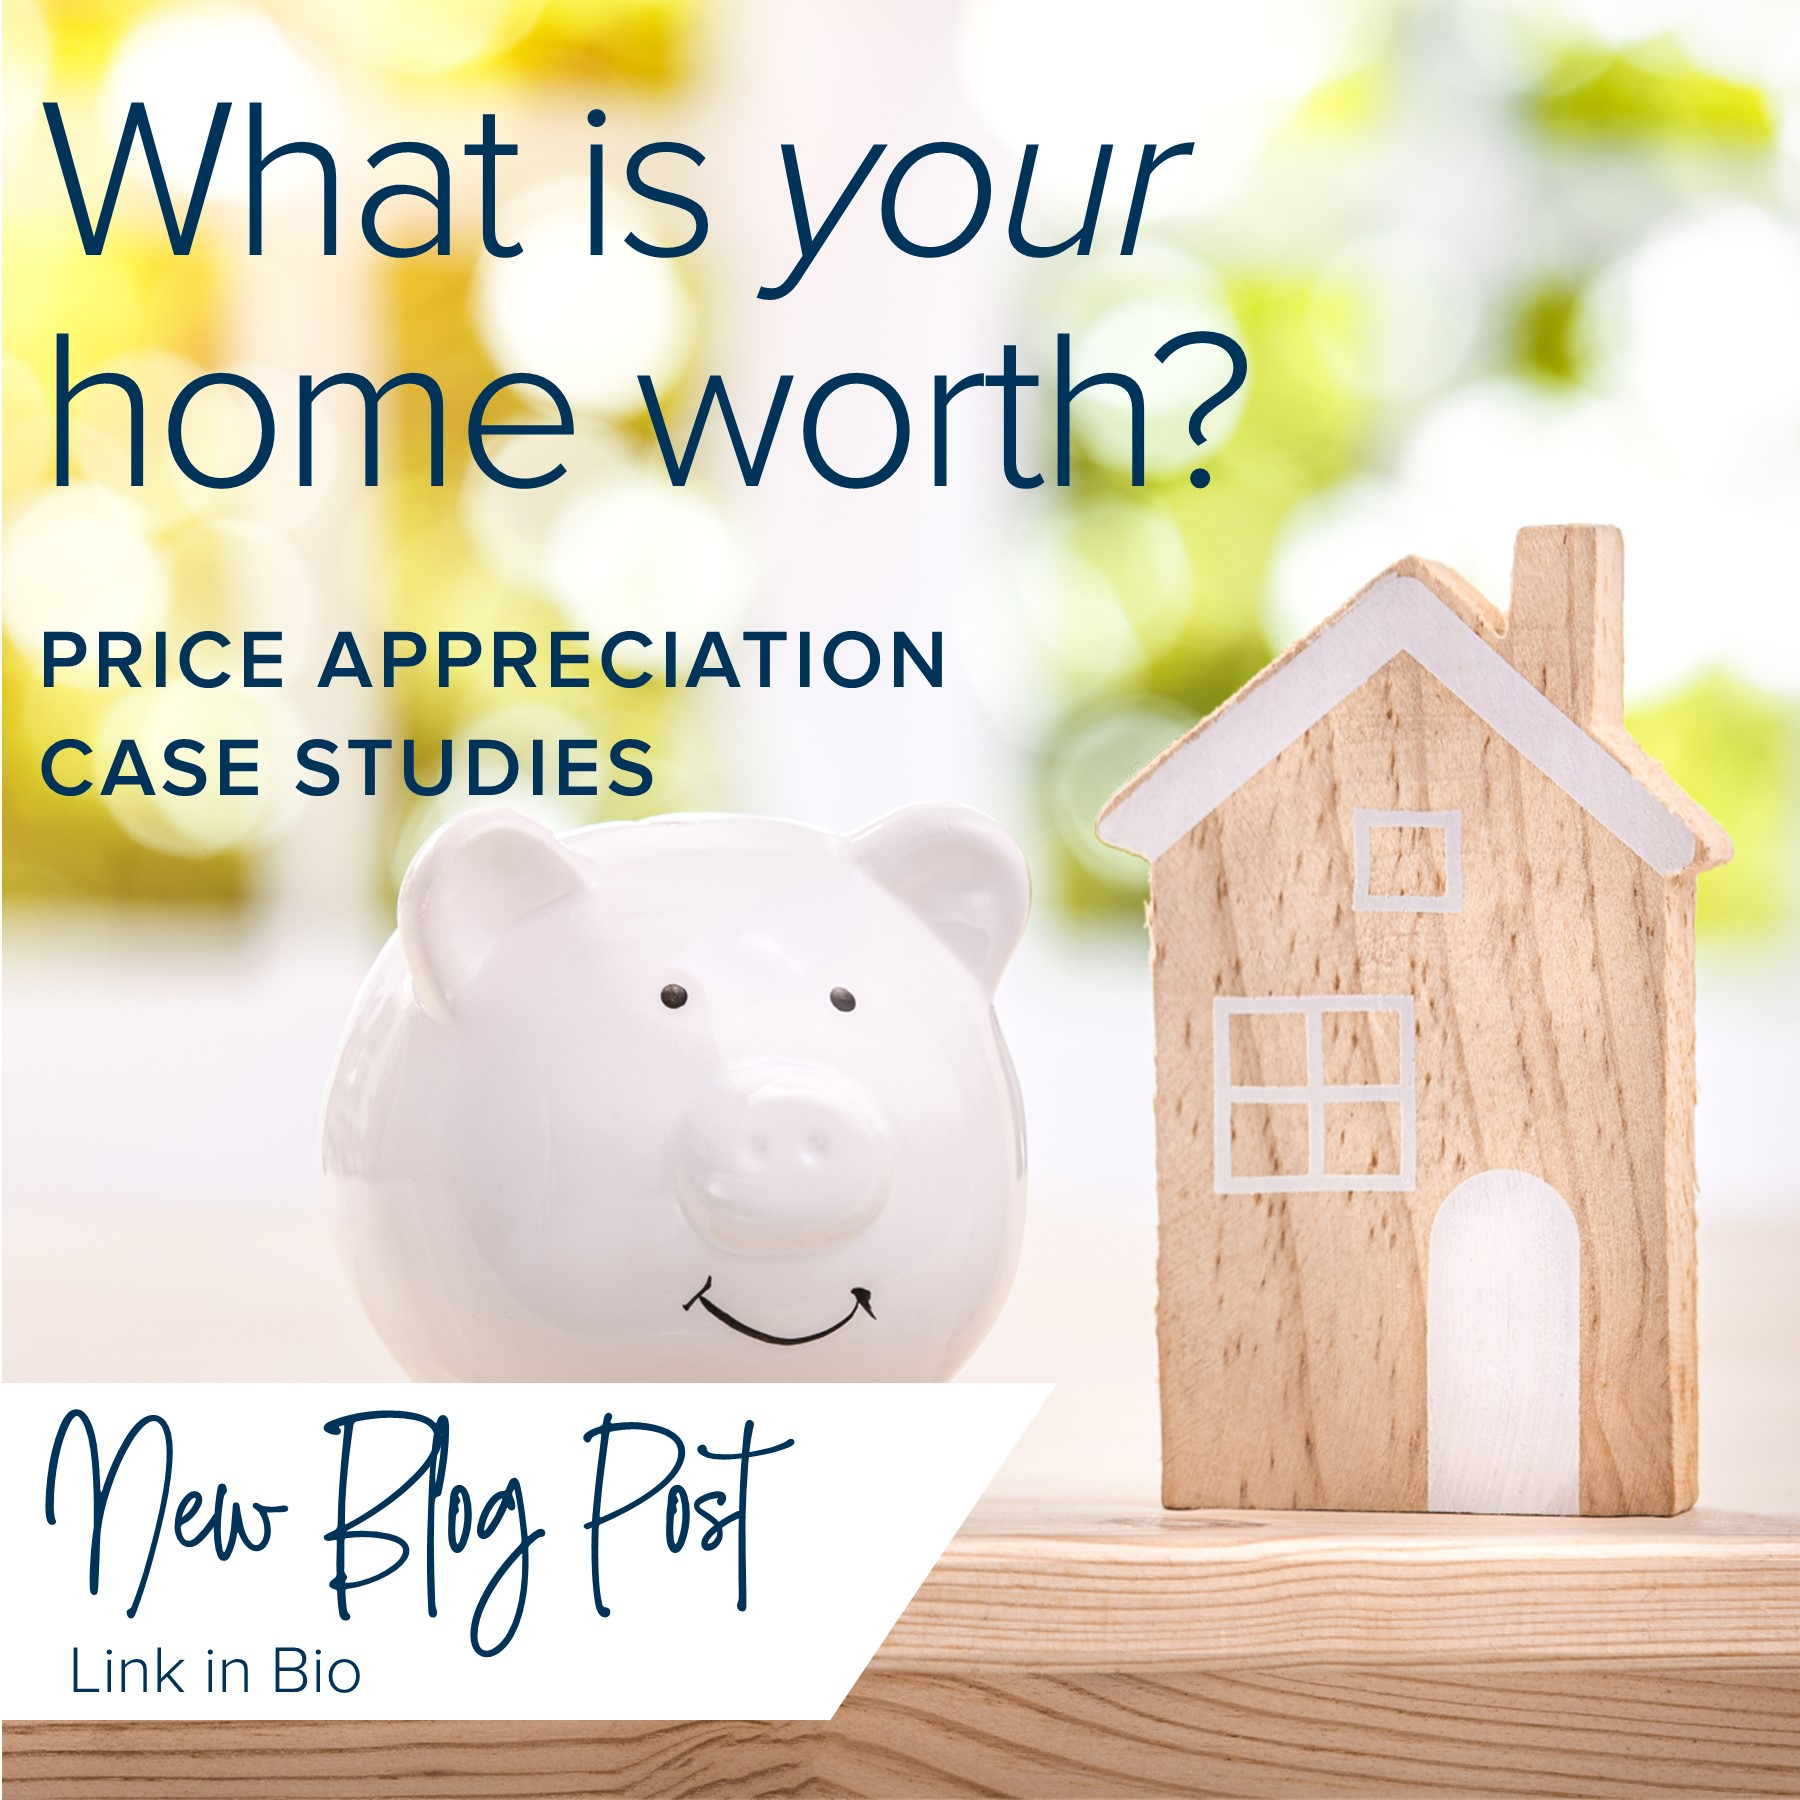 Newsletter - What is your home worth? Price Appreciation Case Studies in Snohomish & King Counties